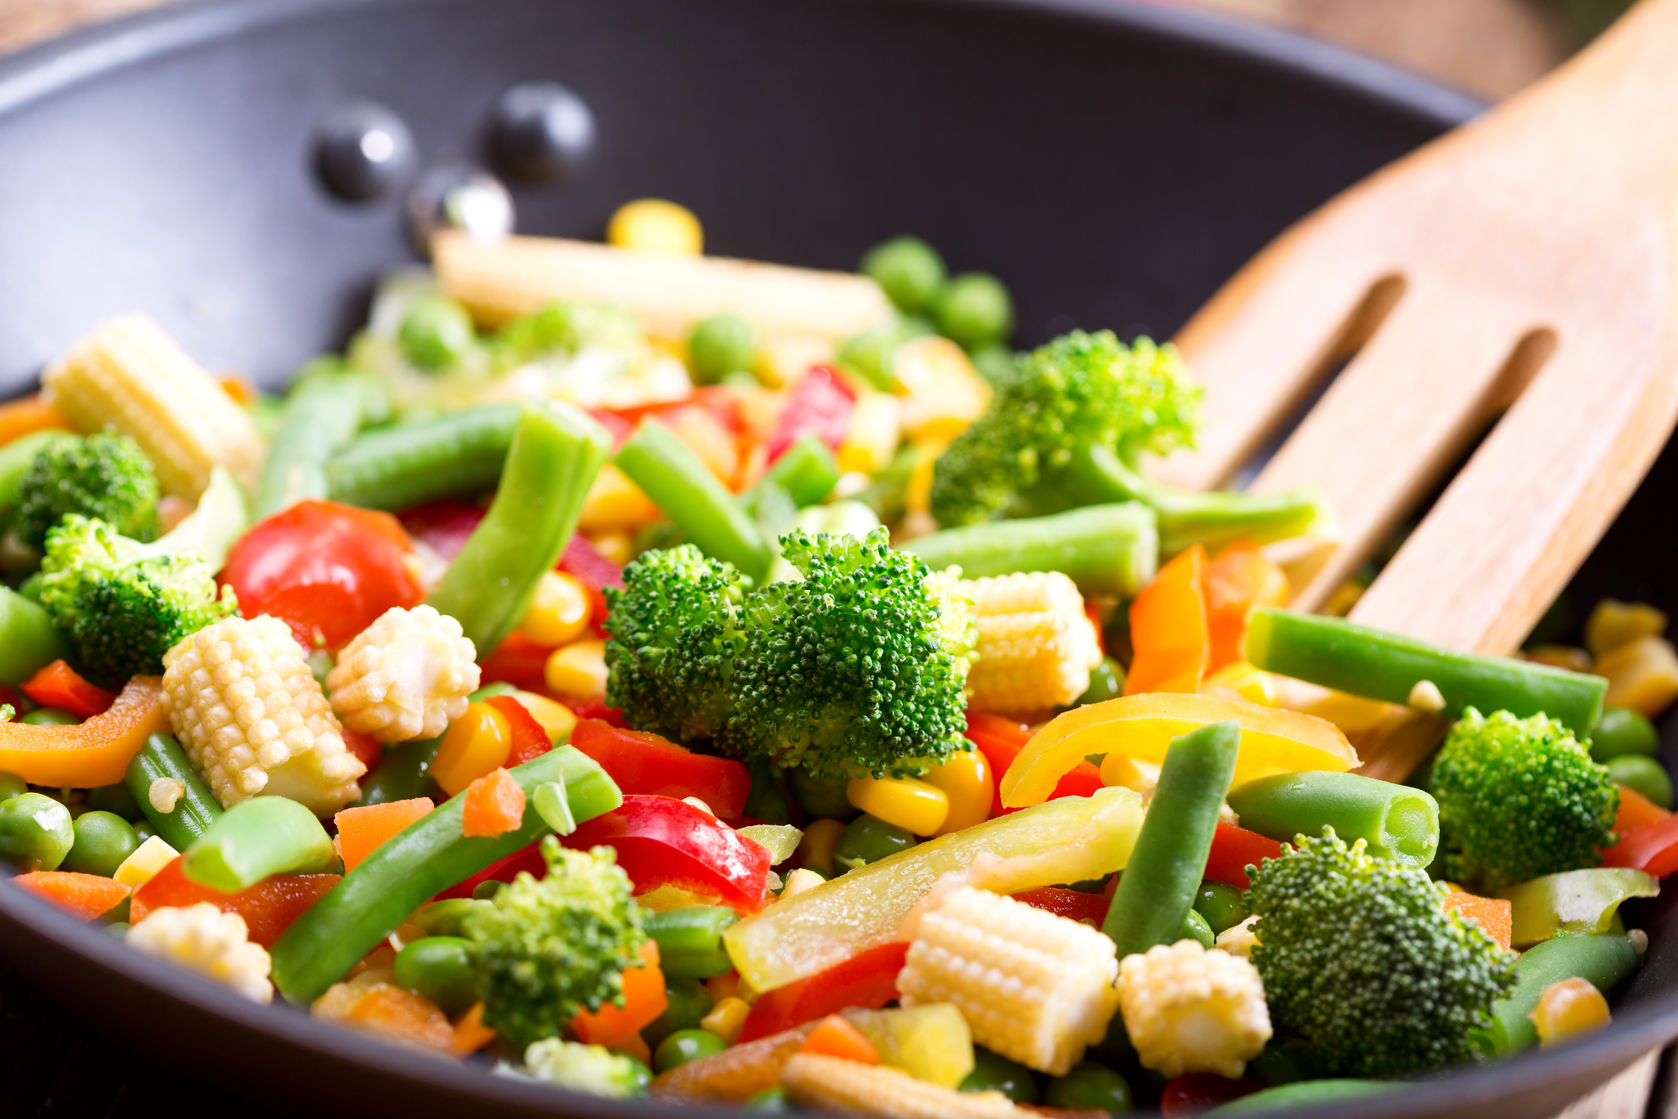 vegetarian diet reduces risk of Graves' disease and hyperthyroidism